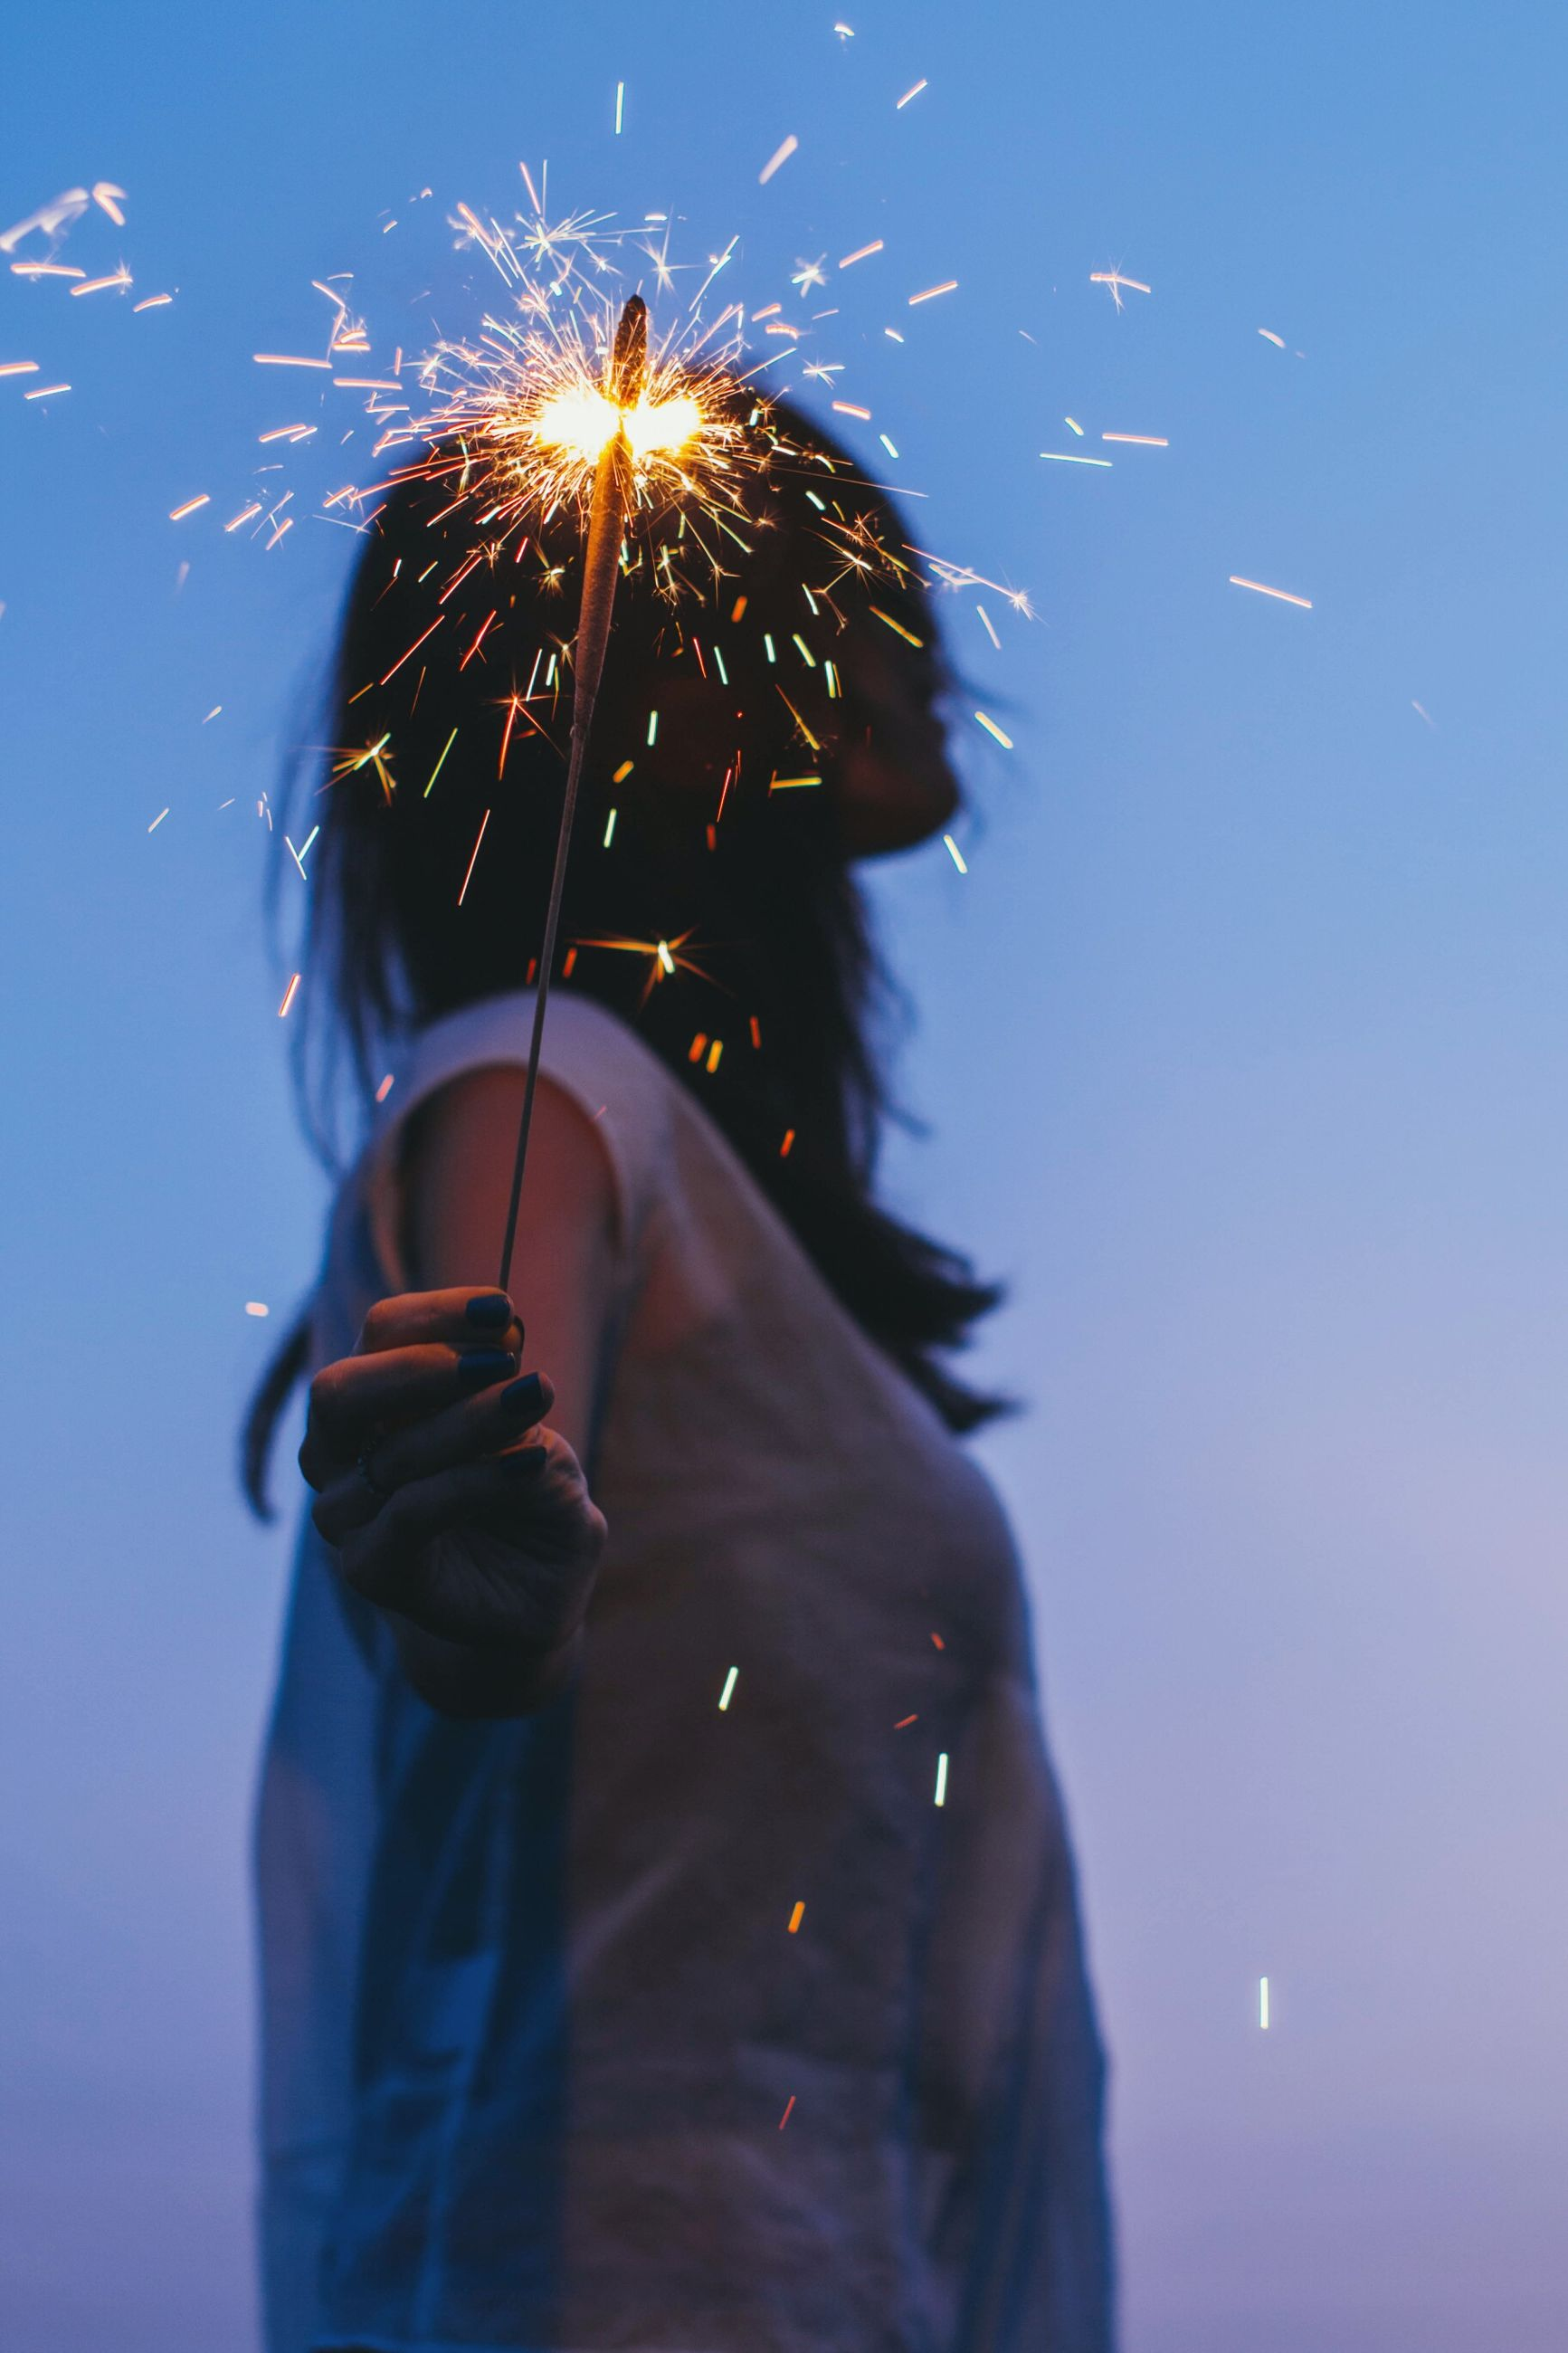 real people, one person, celebration, sparkler, outdoors, leisure activity, lifestyles, sky, firework display, low angle view, standing, clear sky, men, women, day, nature, close-up, people